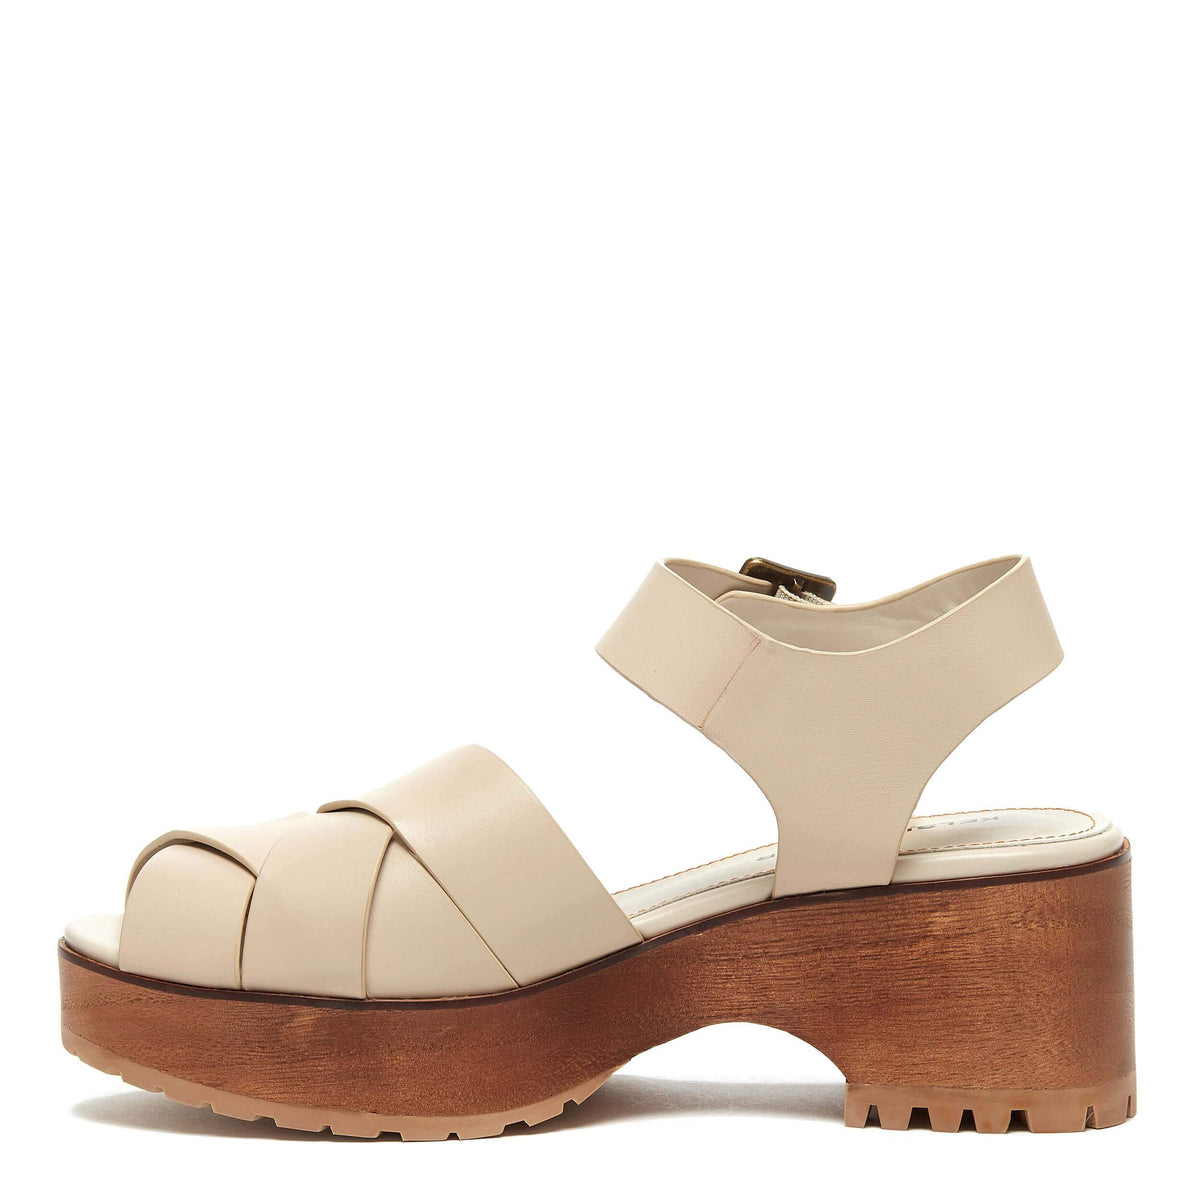 Webster White Wash Leather Wood Sandal